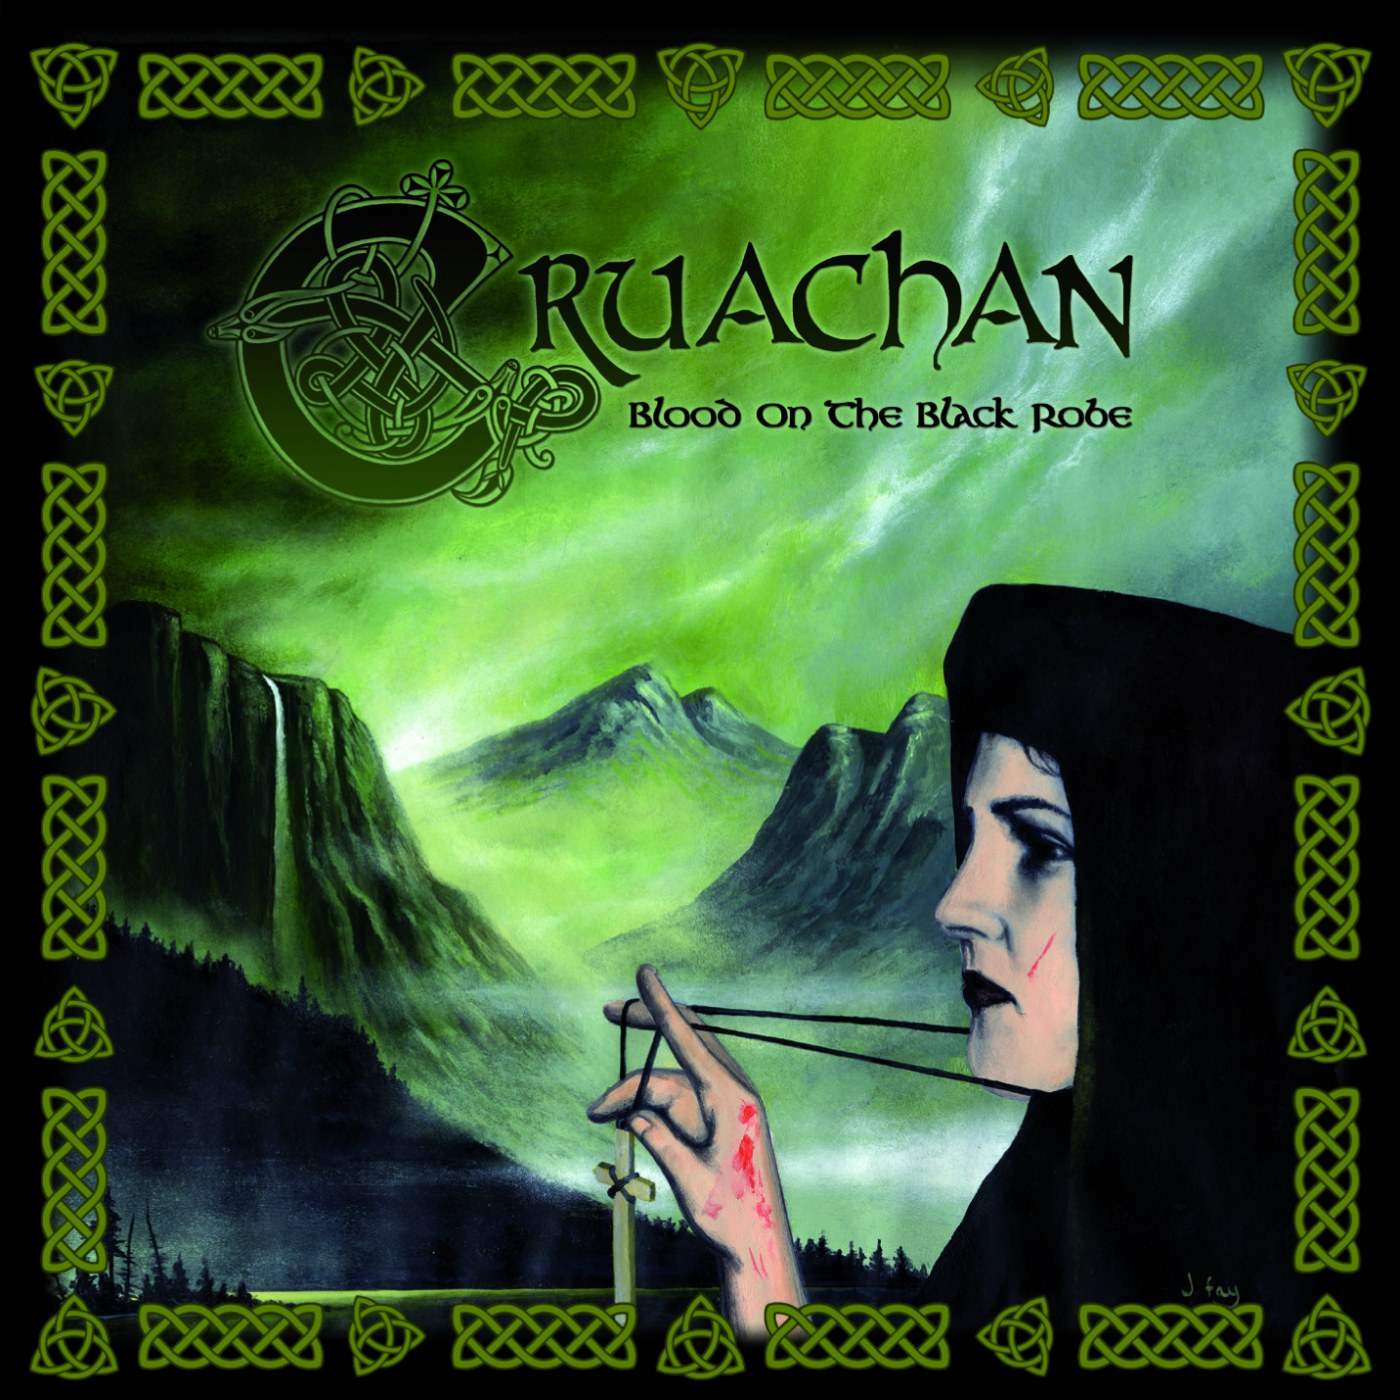 Review for Cruachan - Blood on the Black Robe